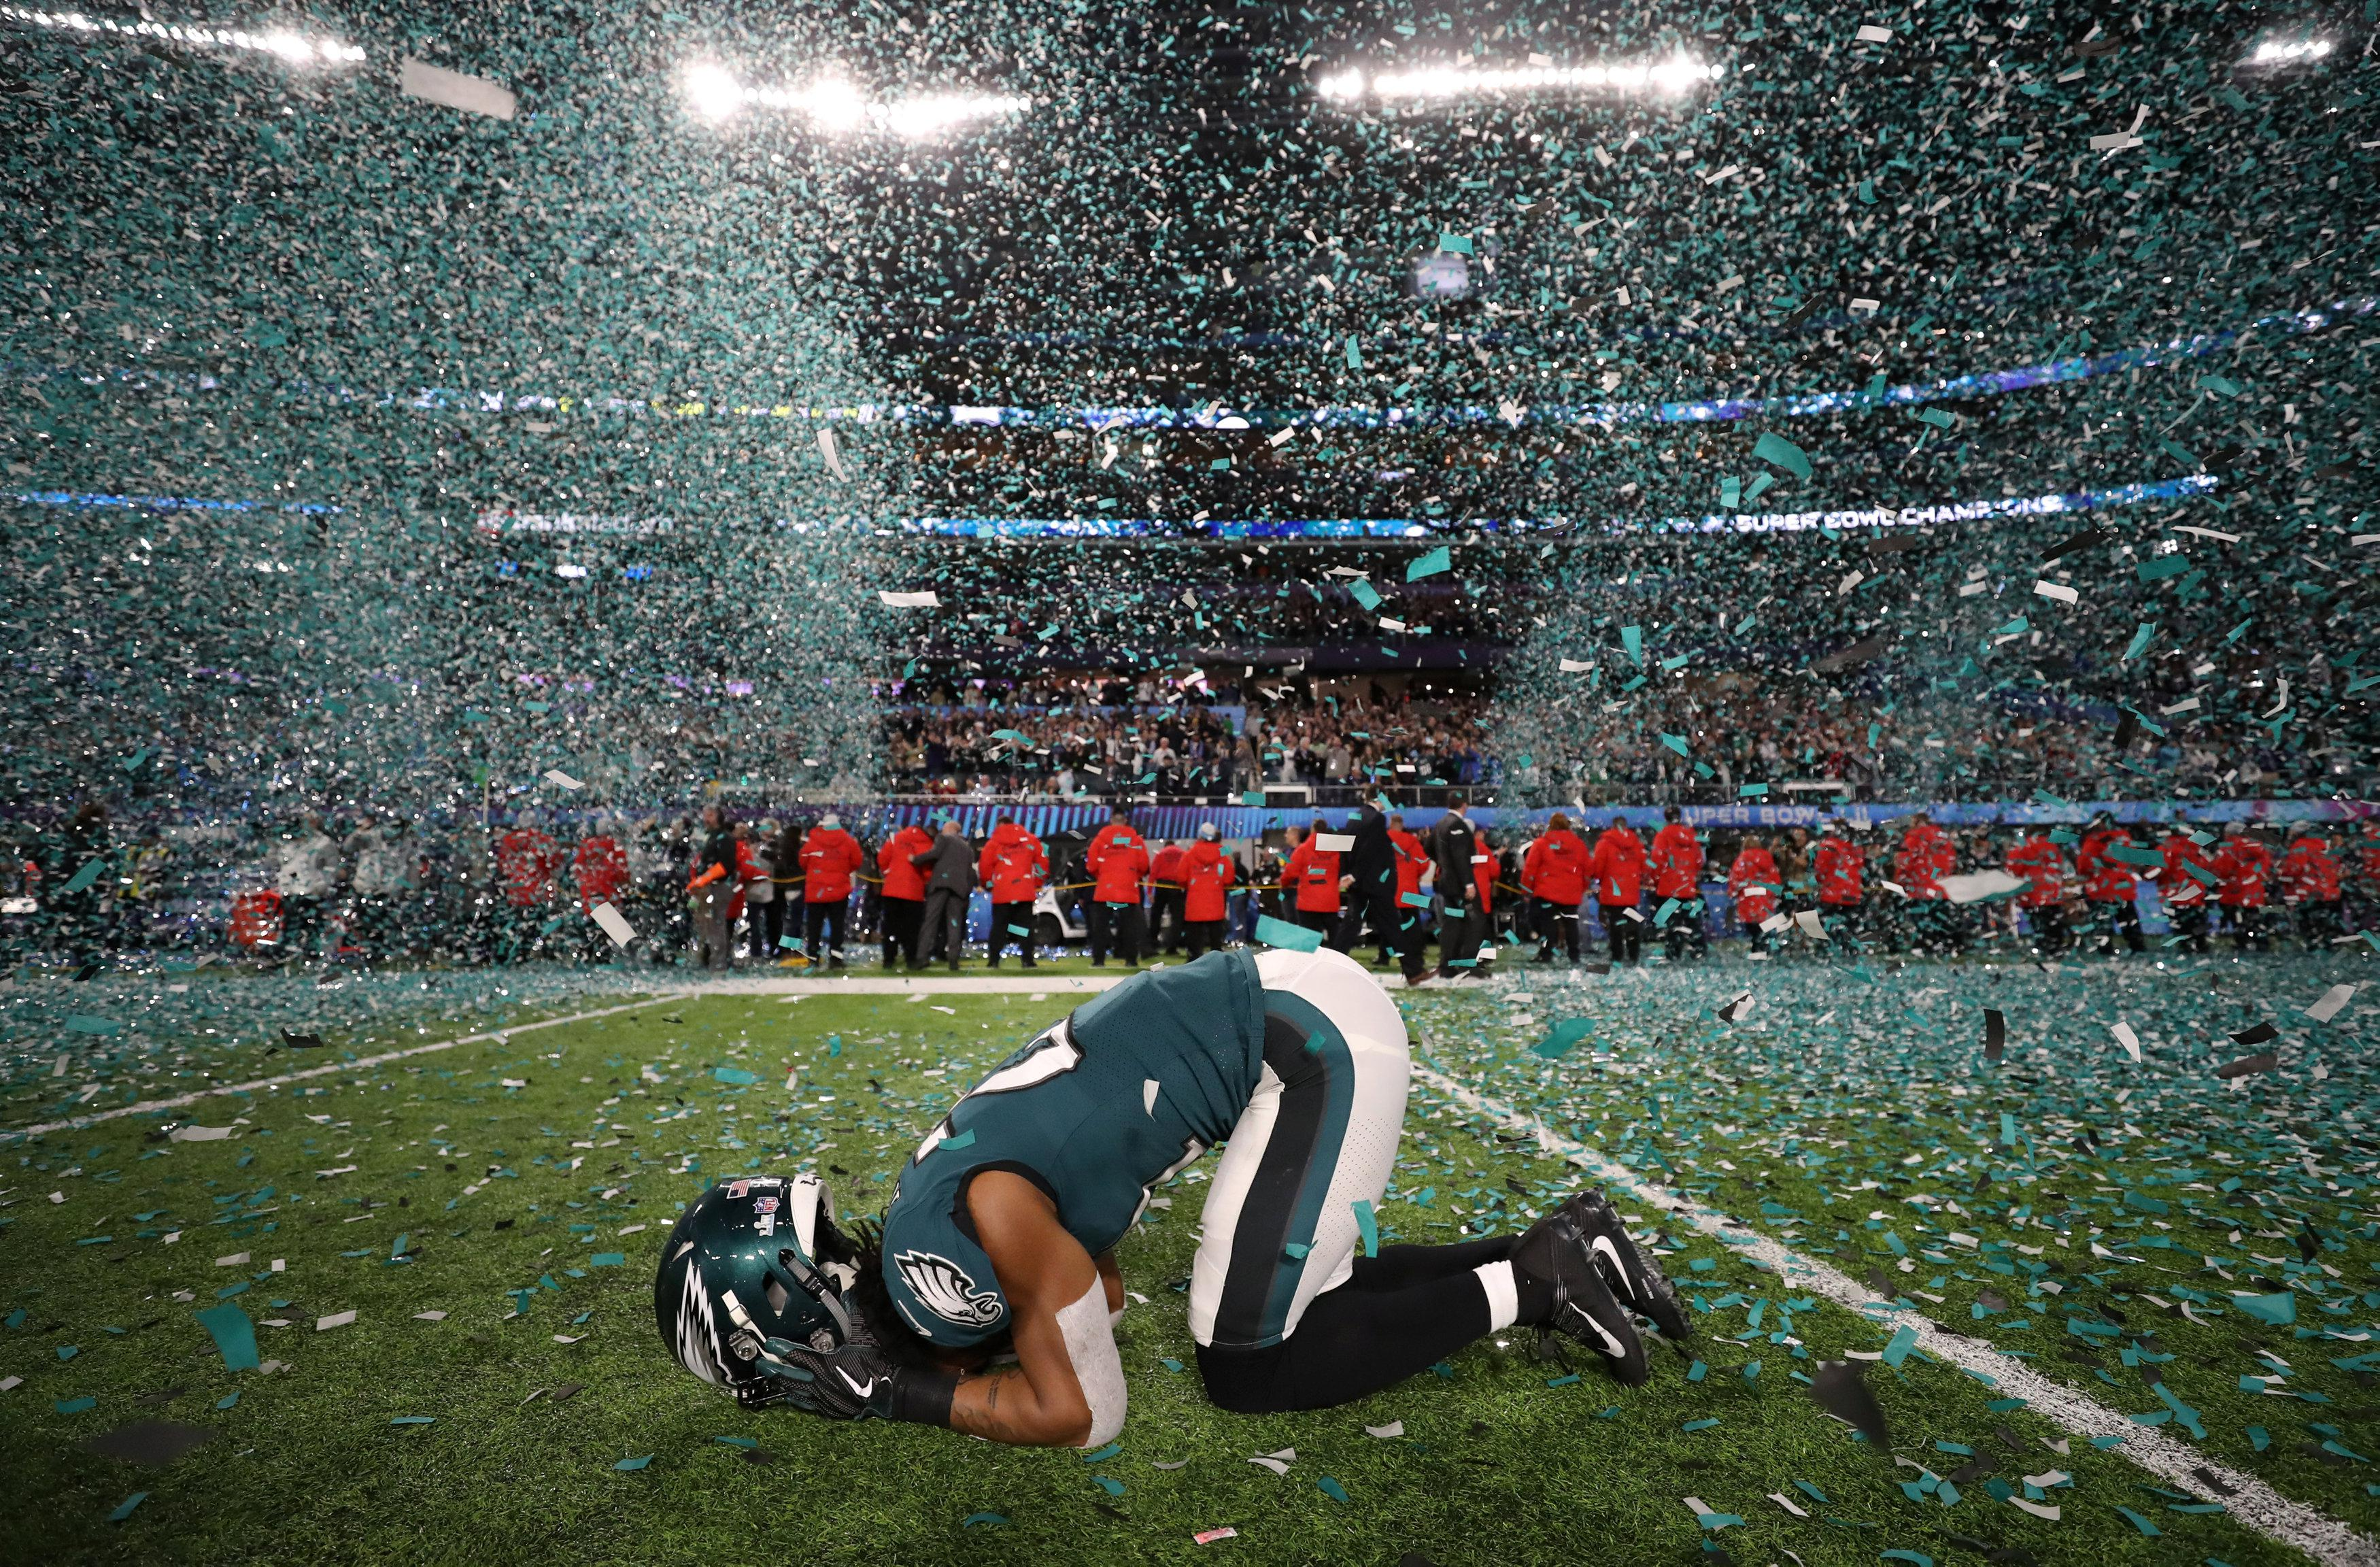 The Philadelphia Eagles won the Super Bowl in January - but face a massive task to make it back this season